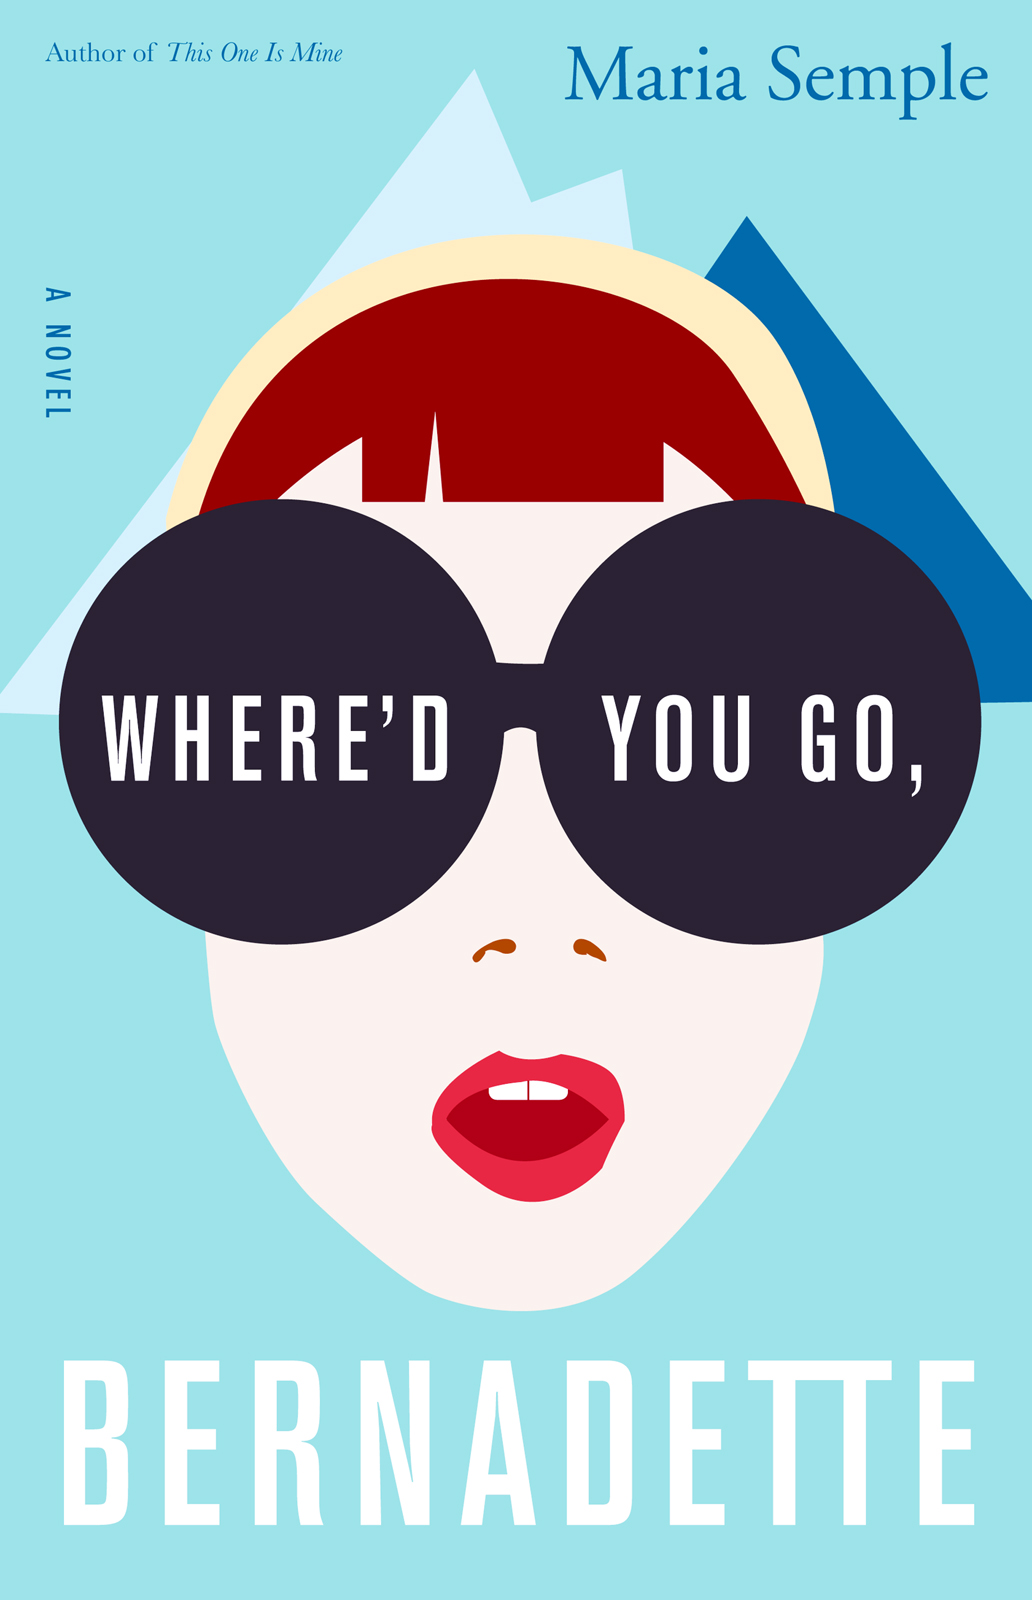 Washington: Where'd You Go, Bernadette by Maria Semple